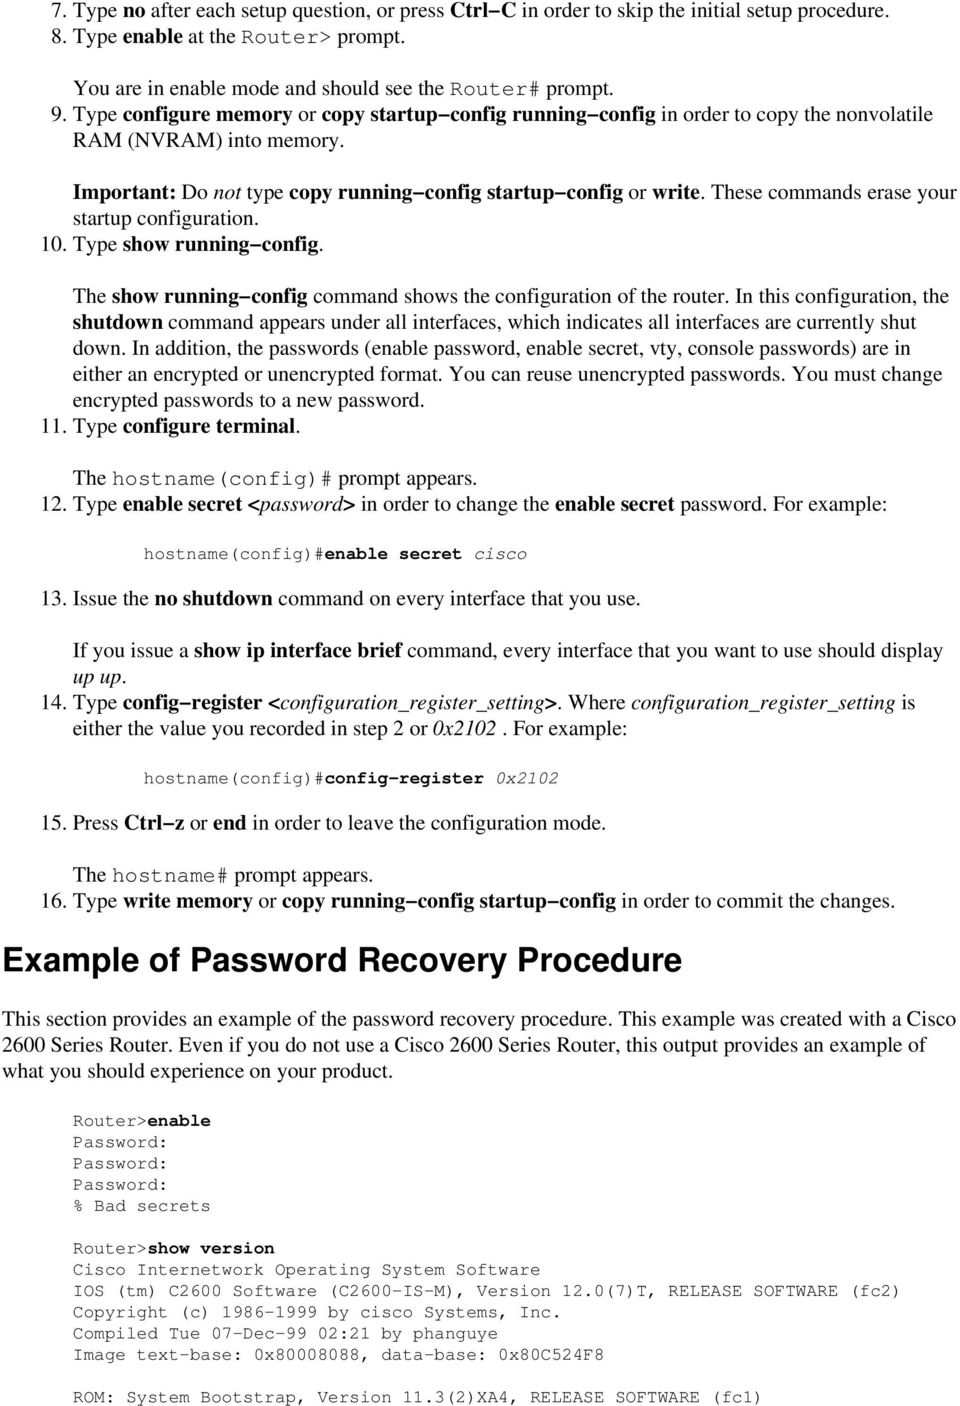 Password Recovery Procedure for the Cisco 806, 826, 827, 828